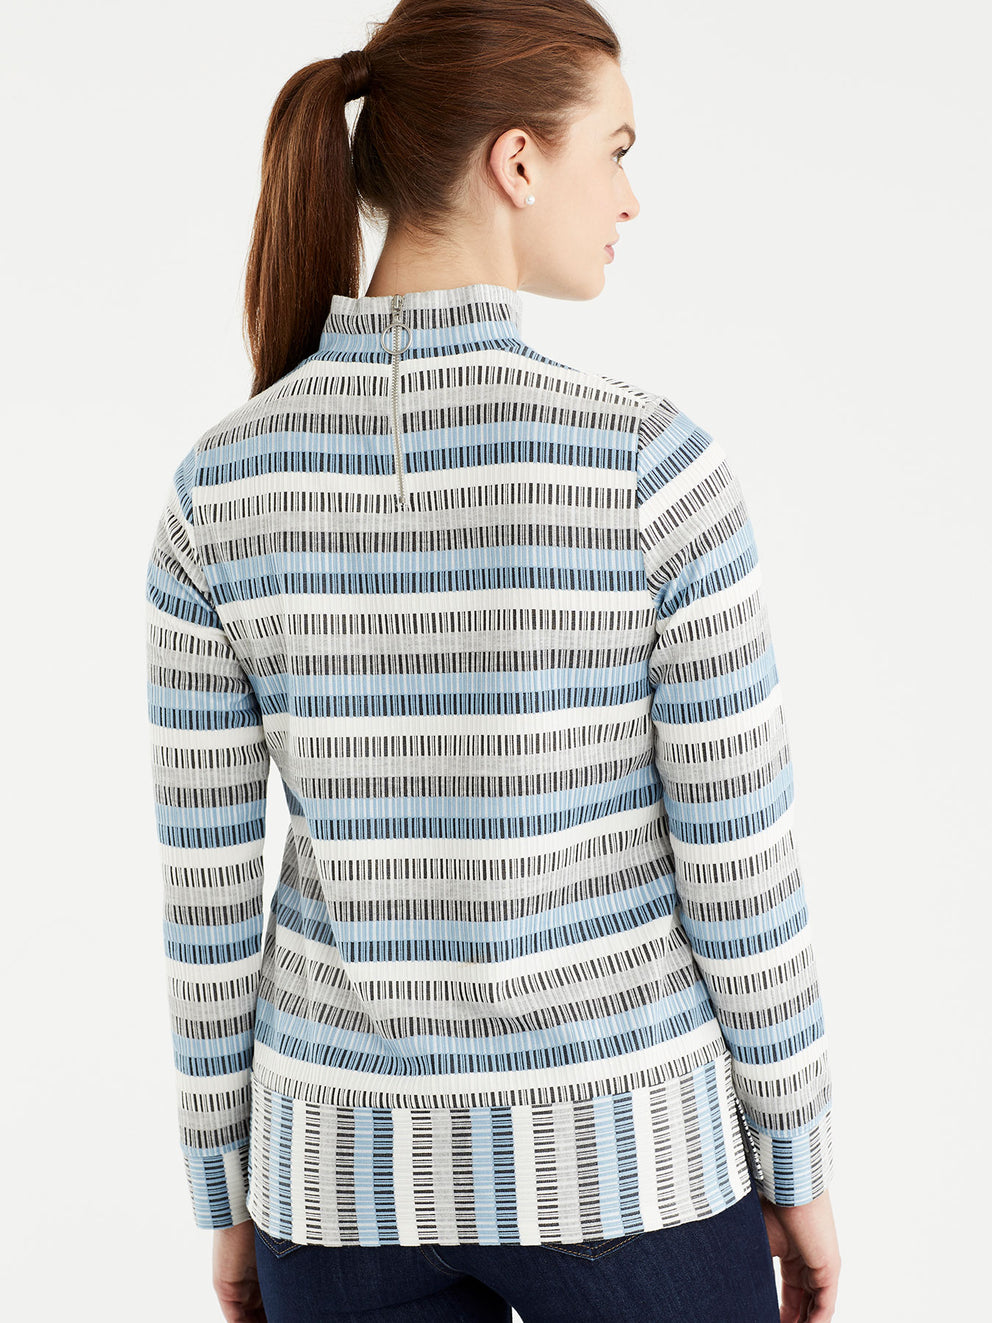 The Jones New York Long Sleeve Mock Neck Top in color Striped Blue - Image Position 3